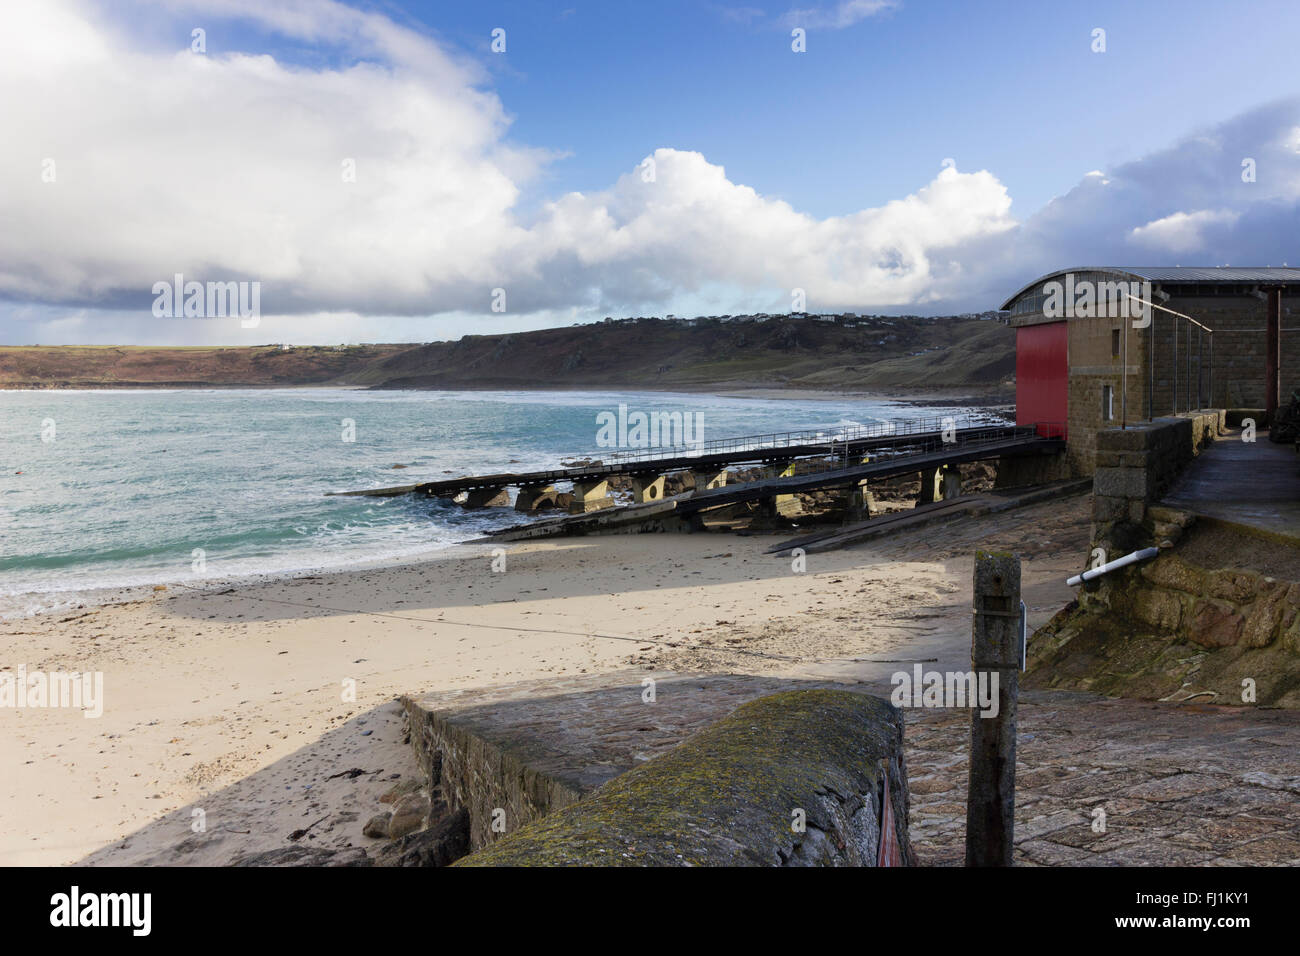 sennen-cove-lifeboat-station-with-launch-ramps-against-a-deserted-FJ1KY1.jpg